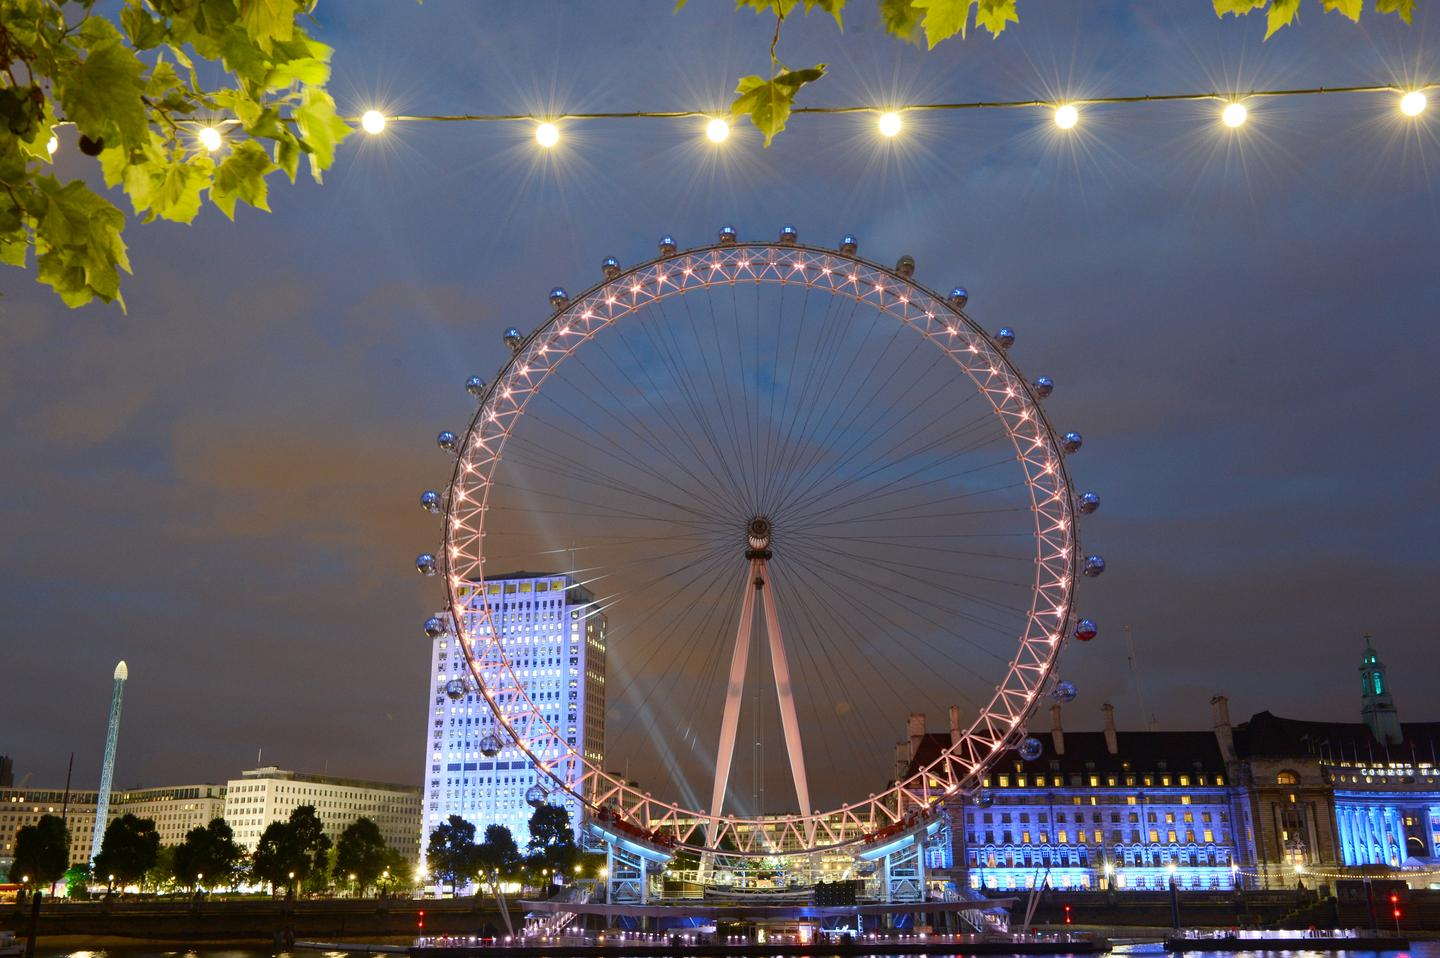 The light show will see the London Eye illuminated to display visual representation of what Brits think about the London 2012 Olympics